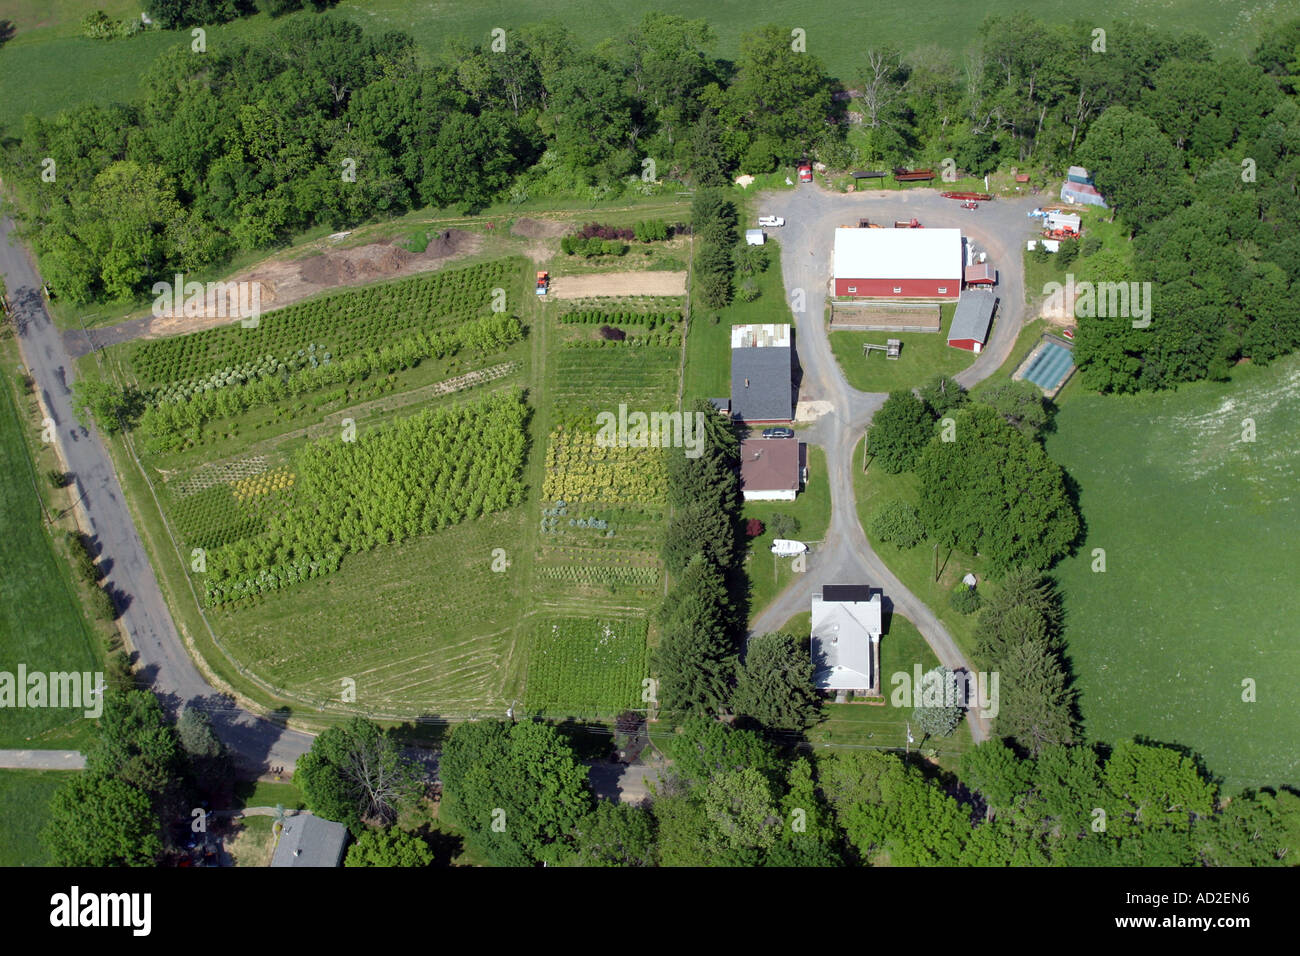 buy small helicopter with Stock Photo Aerial View Of Small Farm And Tree Nursery Located In Hunterdon County 7590101 on 161623715157 in addition 3078261501 in addition Why Indian Special Forces Way Navy Seals Defence Minister Parrikar Clears Emergency Modernisation Plan Weapons  mandos Need More further Stunt Plane 60019 further Mestia.